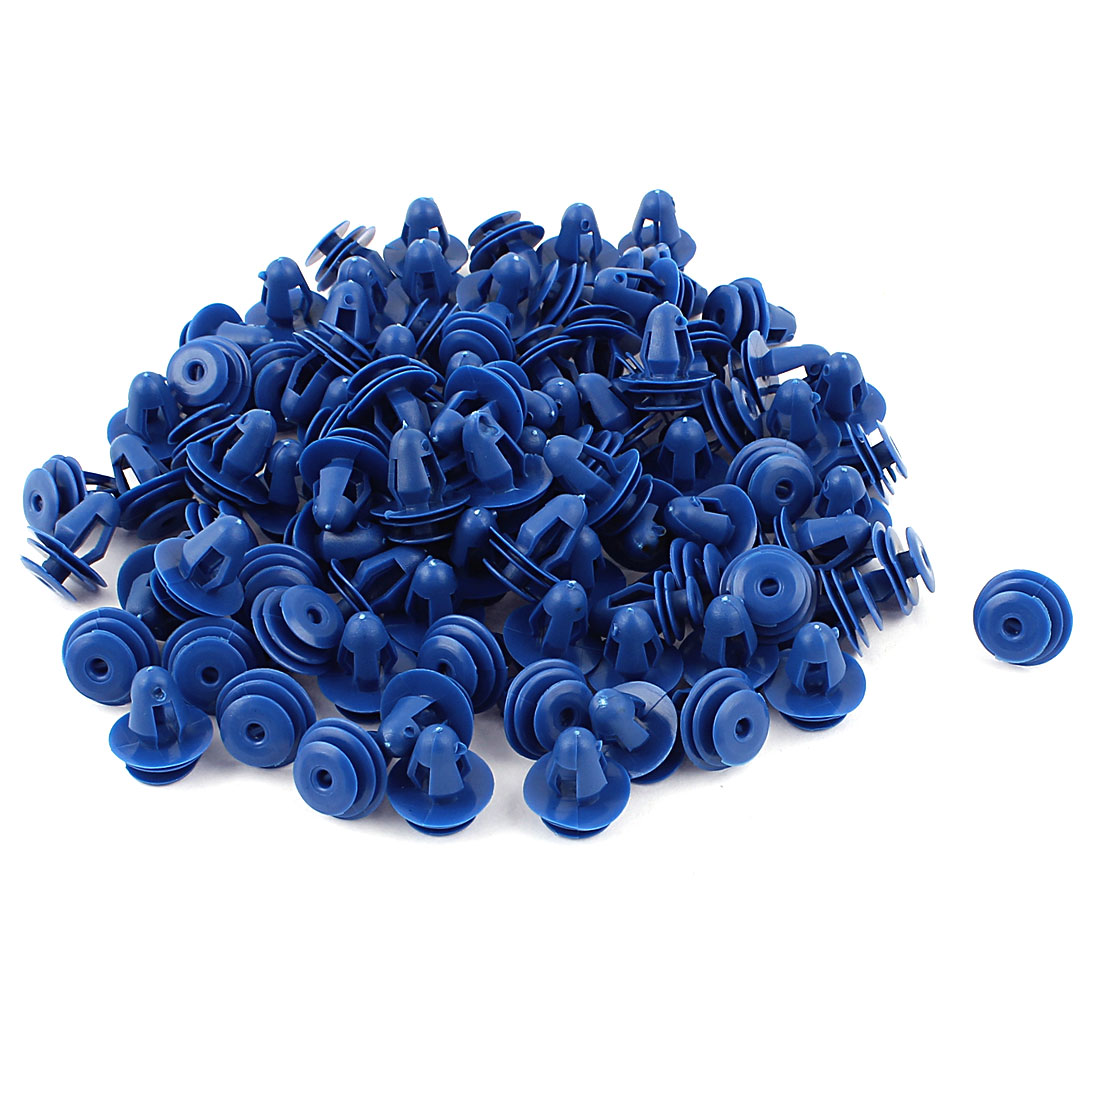 100 Pieces Auto Car Blue Plastic Rivets Fastener Door Clips for 8mm Hole